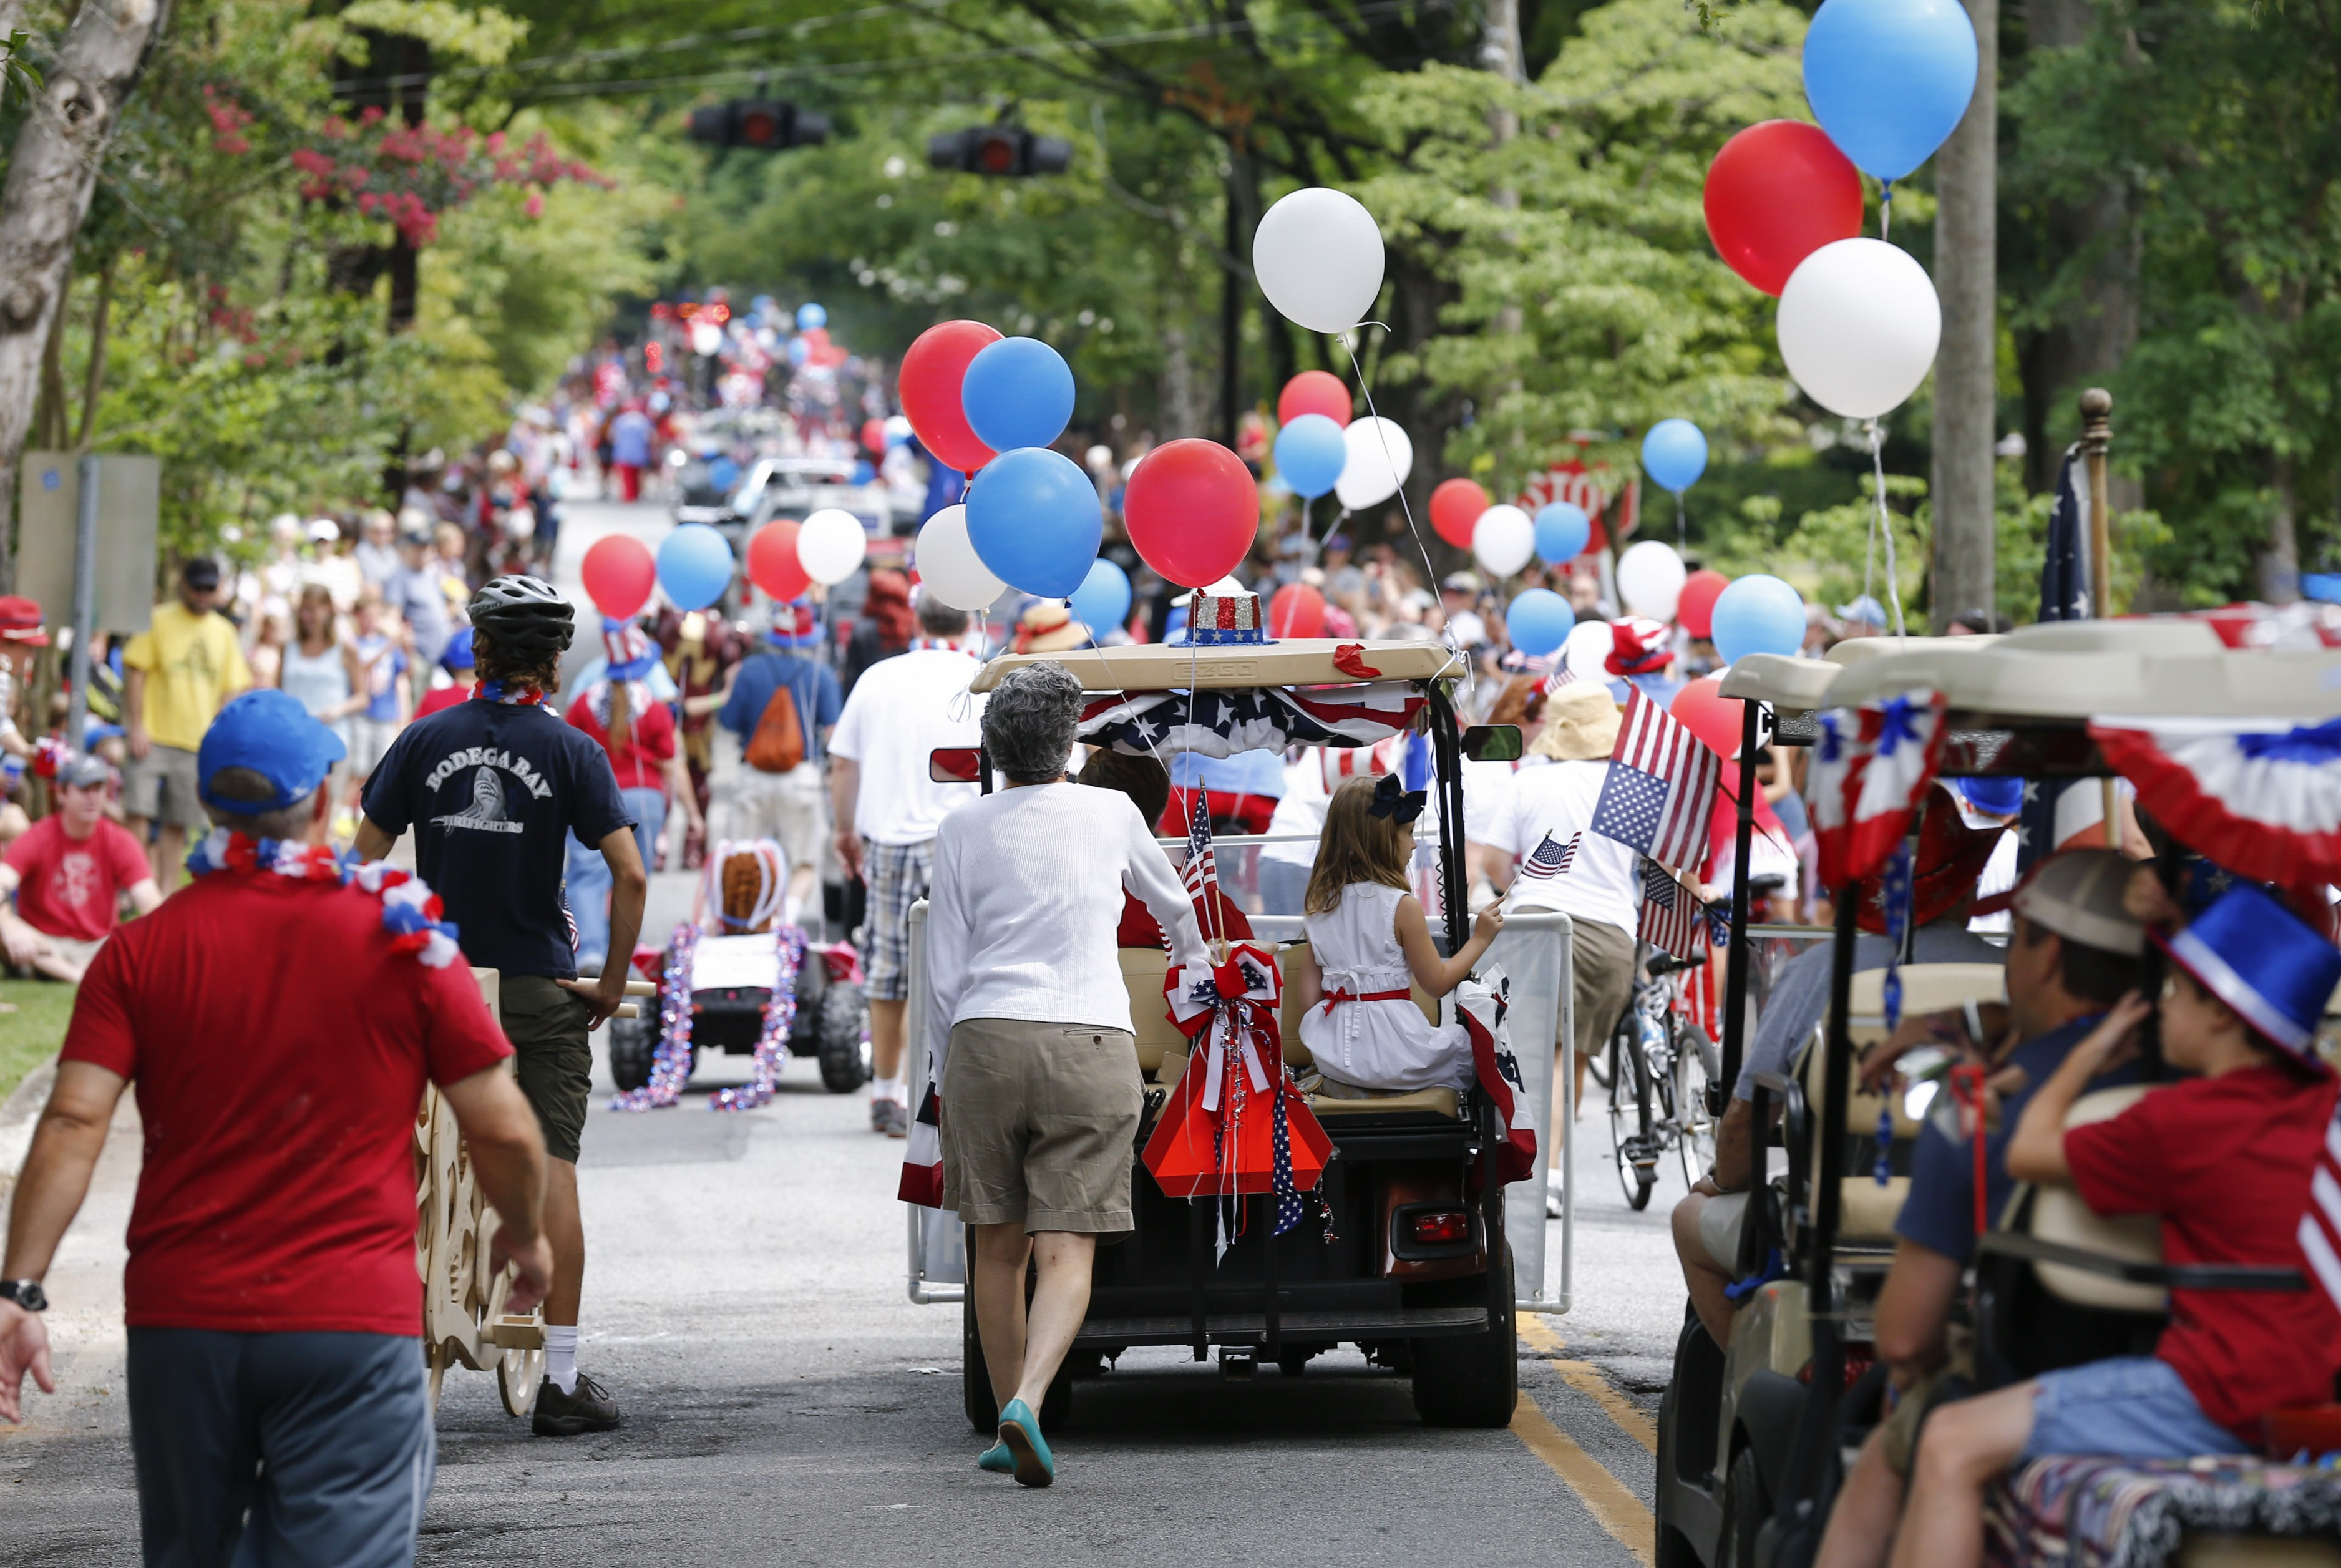 Residents walk down a busy street waving flags and holding balloons in a 4th of July Parade